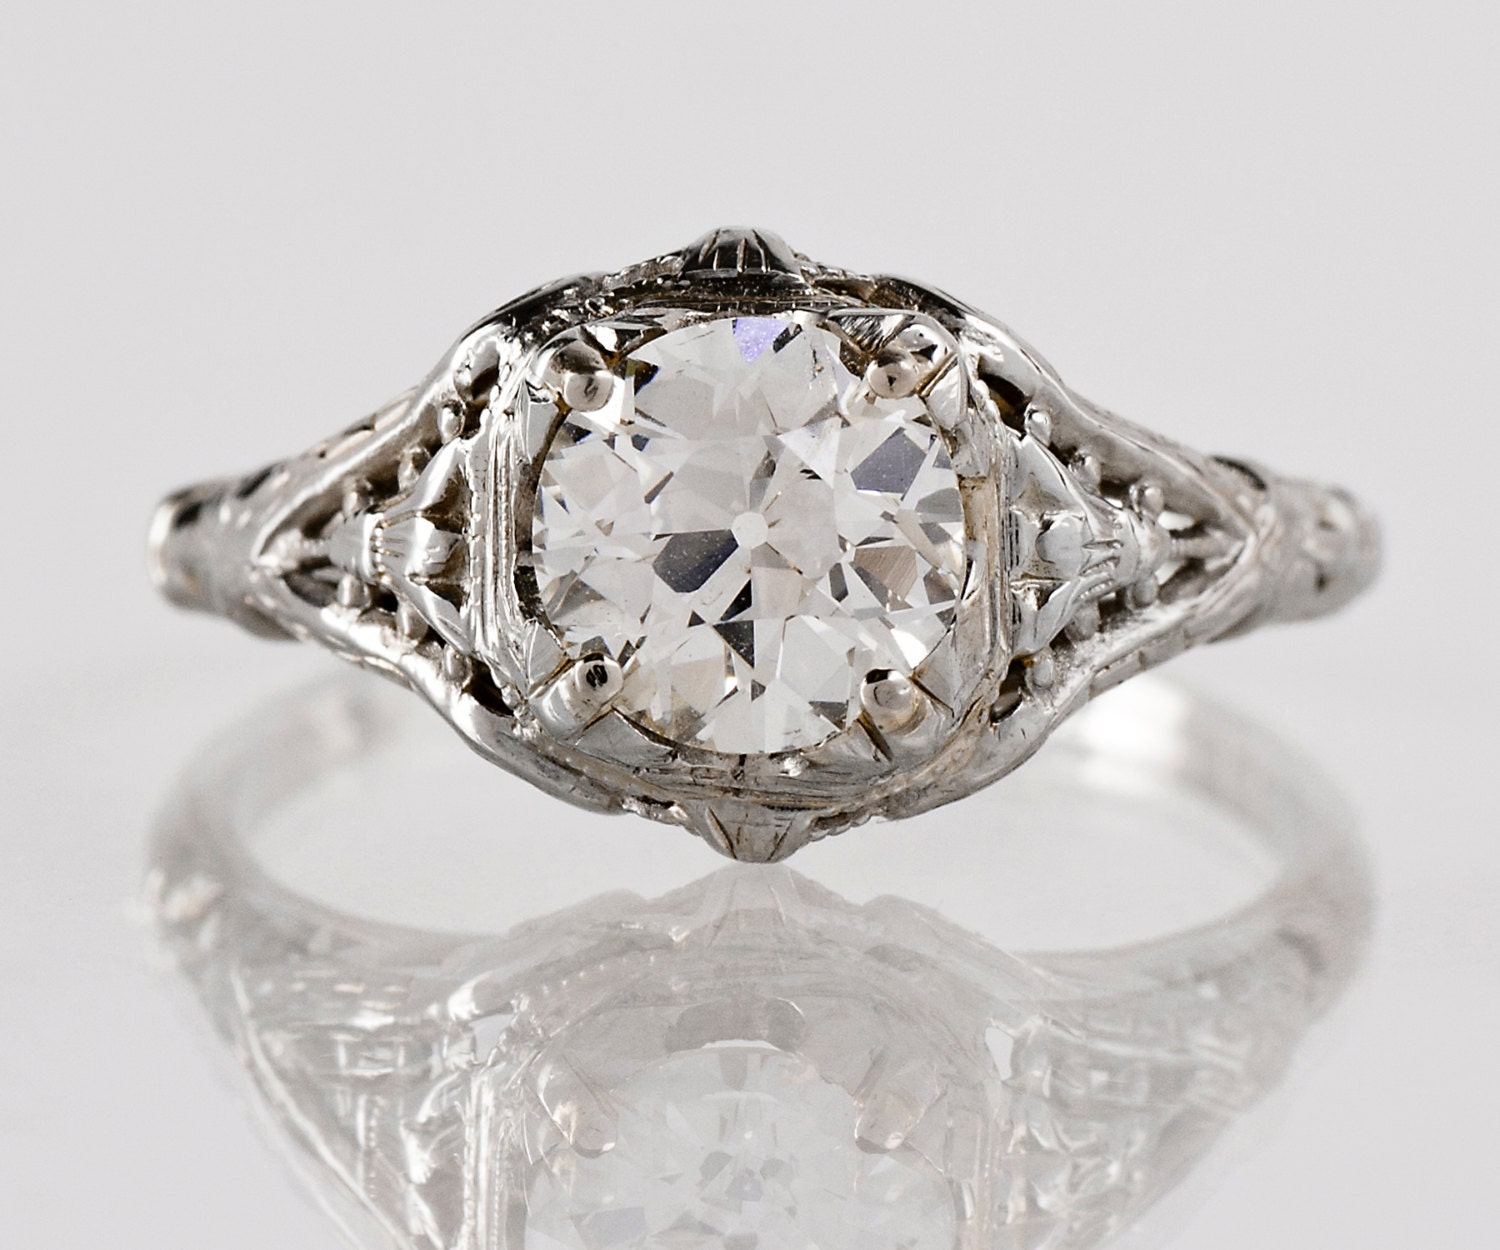 Surprising Vintage Wedding Rings 1920 Designs – Dievoon